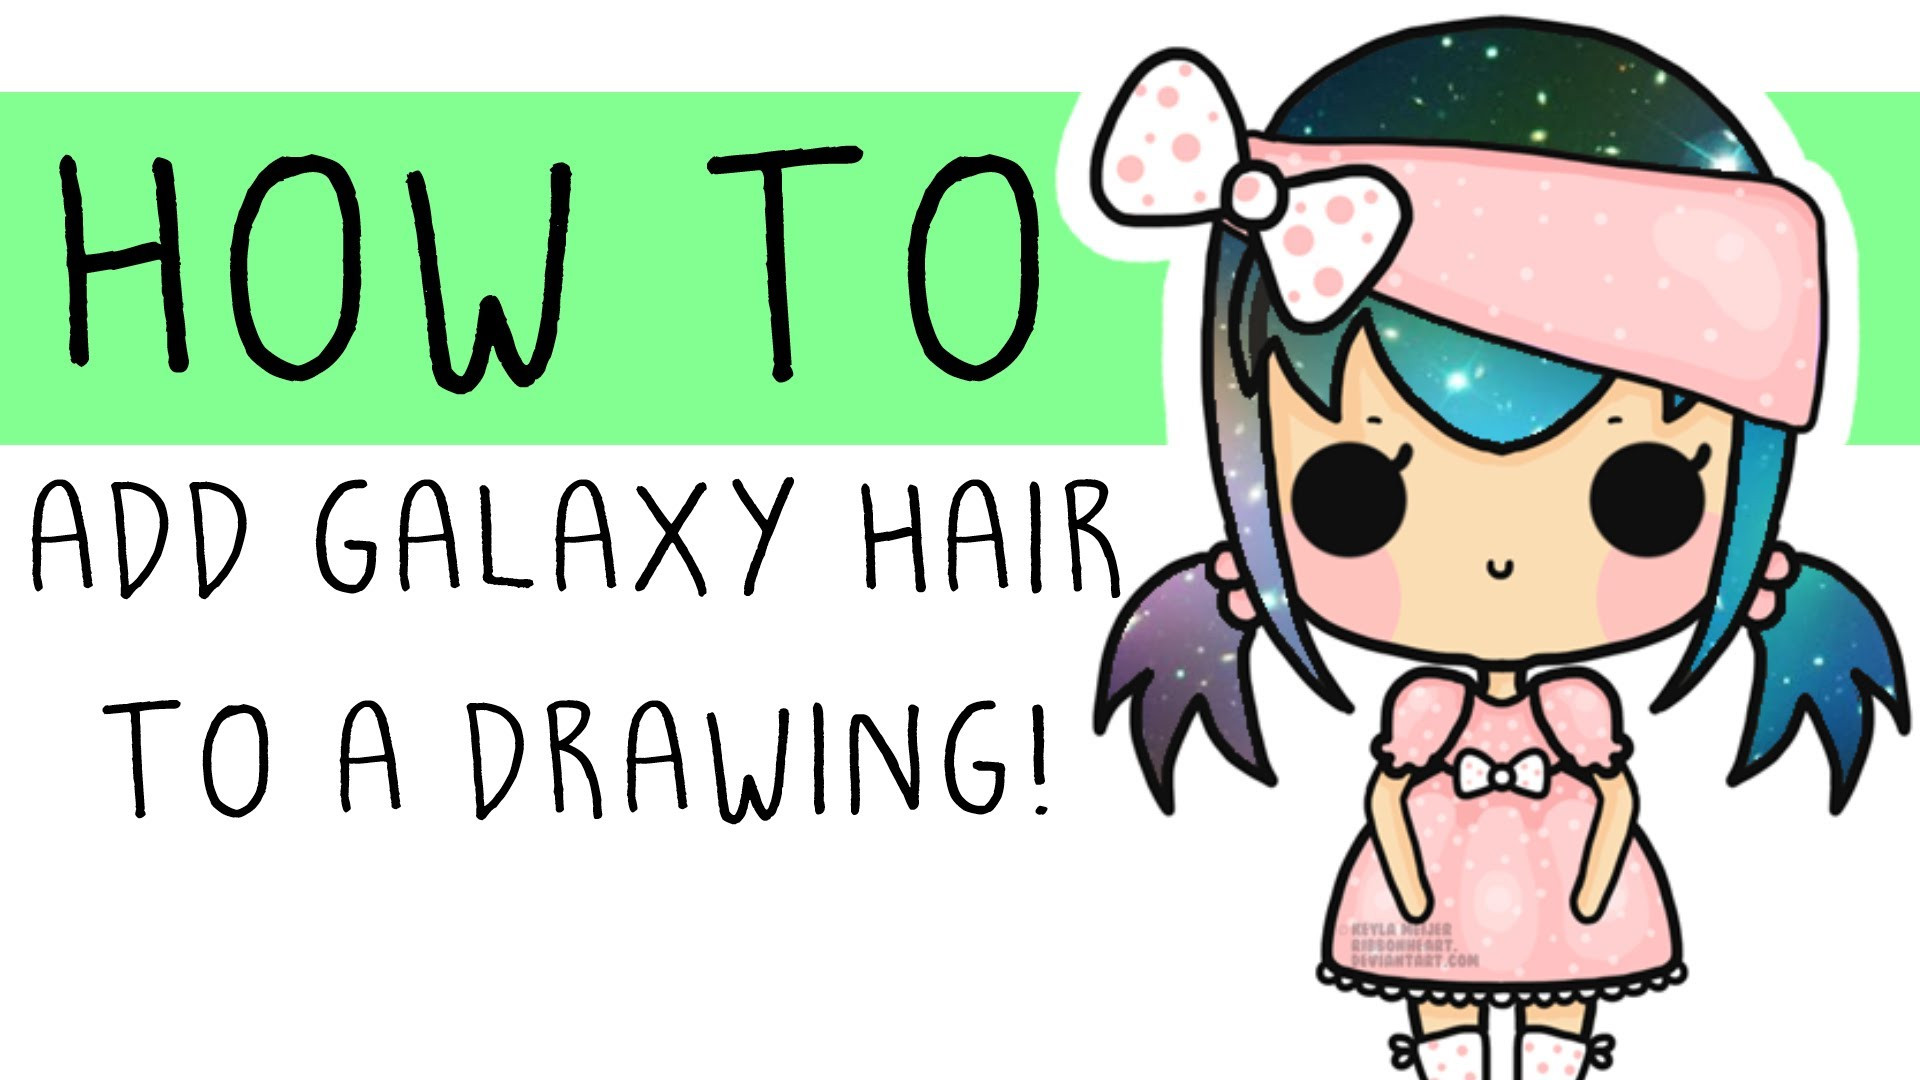 1920x1080 How To Add Galaxy Hair To A Drawing